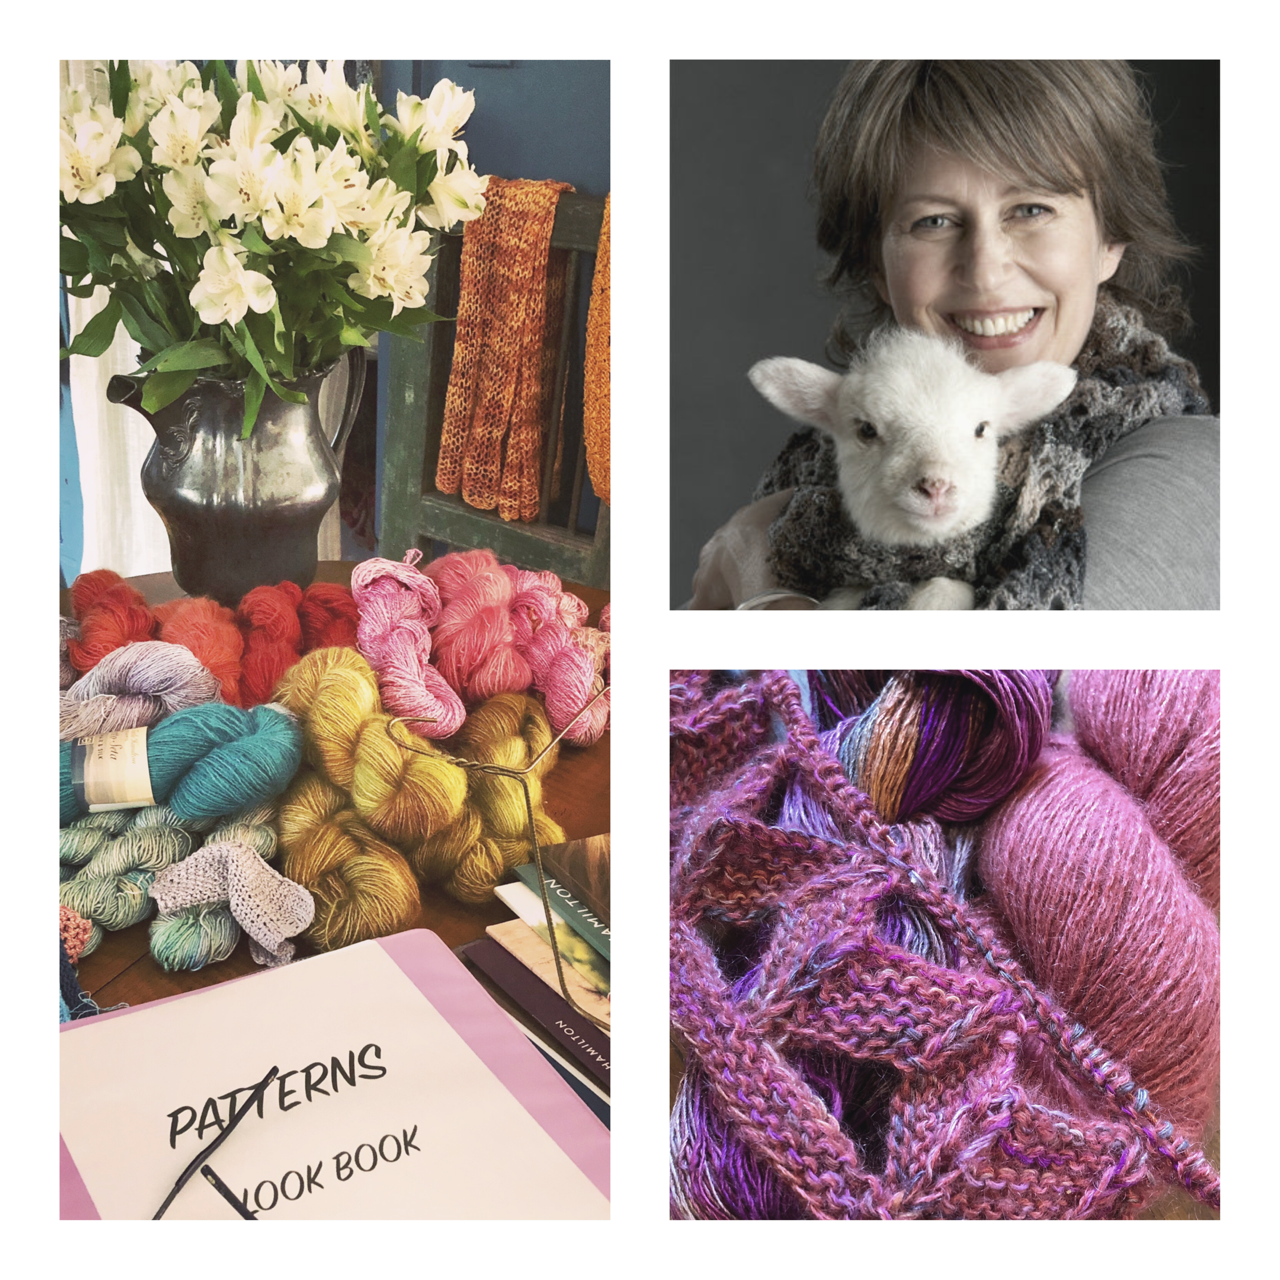 Heart and Spirit is excited to host Cornelia Tuttle Hamilton for a trunk show! Cornelia's designs have been published extensively in both American and European magazines such as Vogue Knitting, Creative Knitting, and Knitting (Danmark), just to name a few. She has 14 published pattern books to her name, as well as a yarn line. She will be bringing her lovely yarn selection to Heart and Spirit at the Westside Market Toco Hill, on Sunday, November 10, from 1:00-4:30pm. Come meet another fabulous maker in our community! -